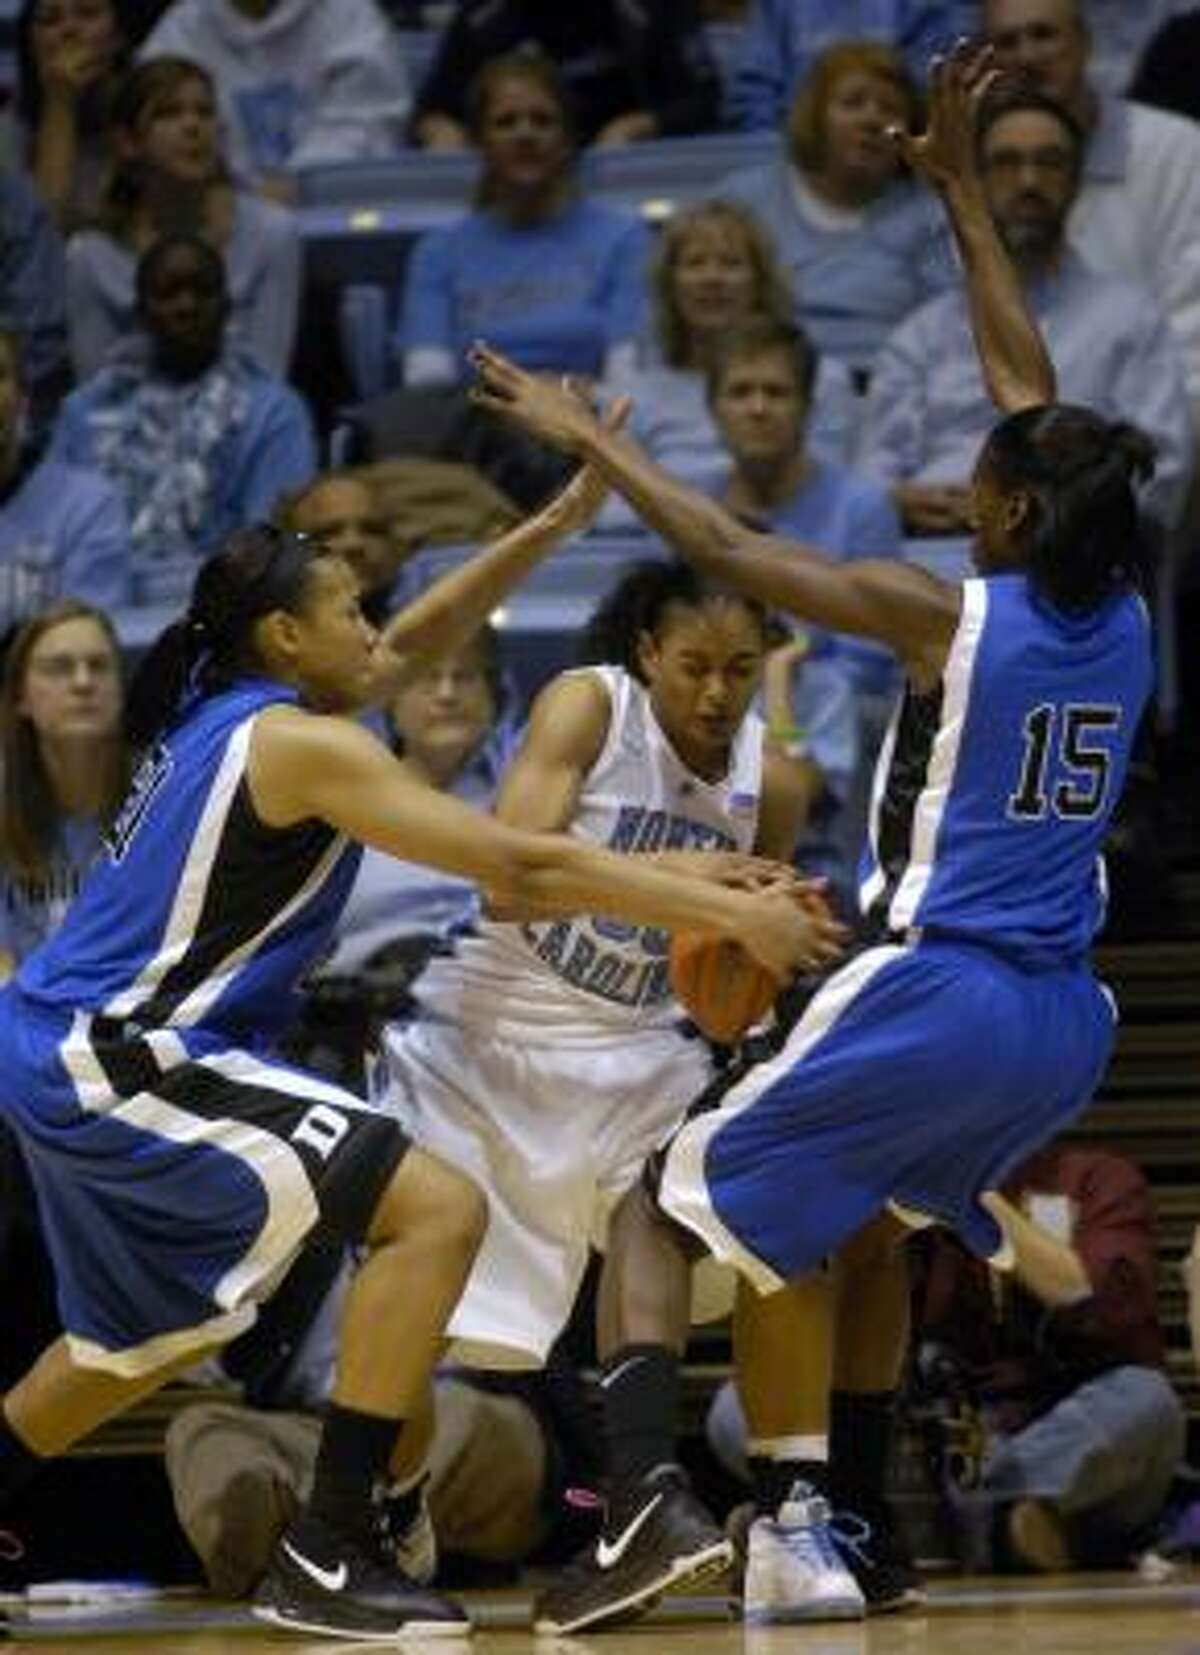 North Carolina's Italee Lucas, center, is pressured by Duke's Joy Cheek, left, and Bridgette Mitchell during the second half.